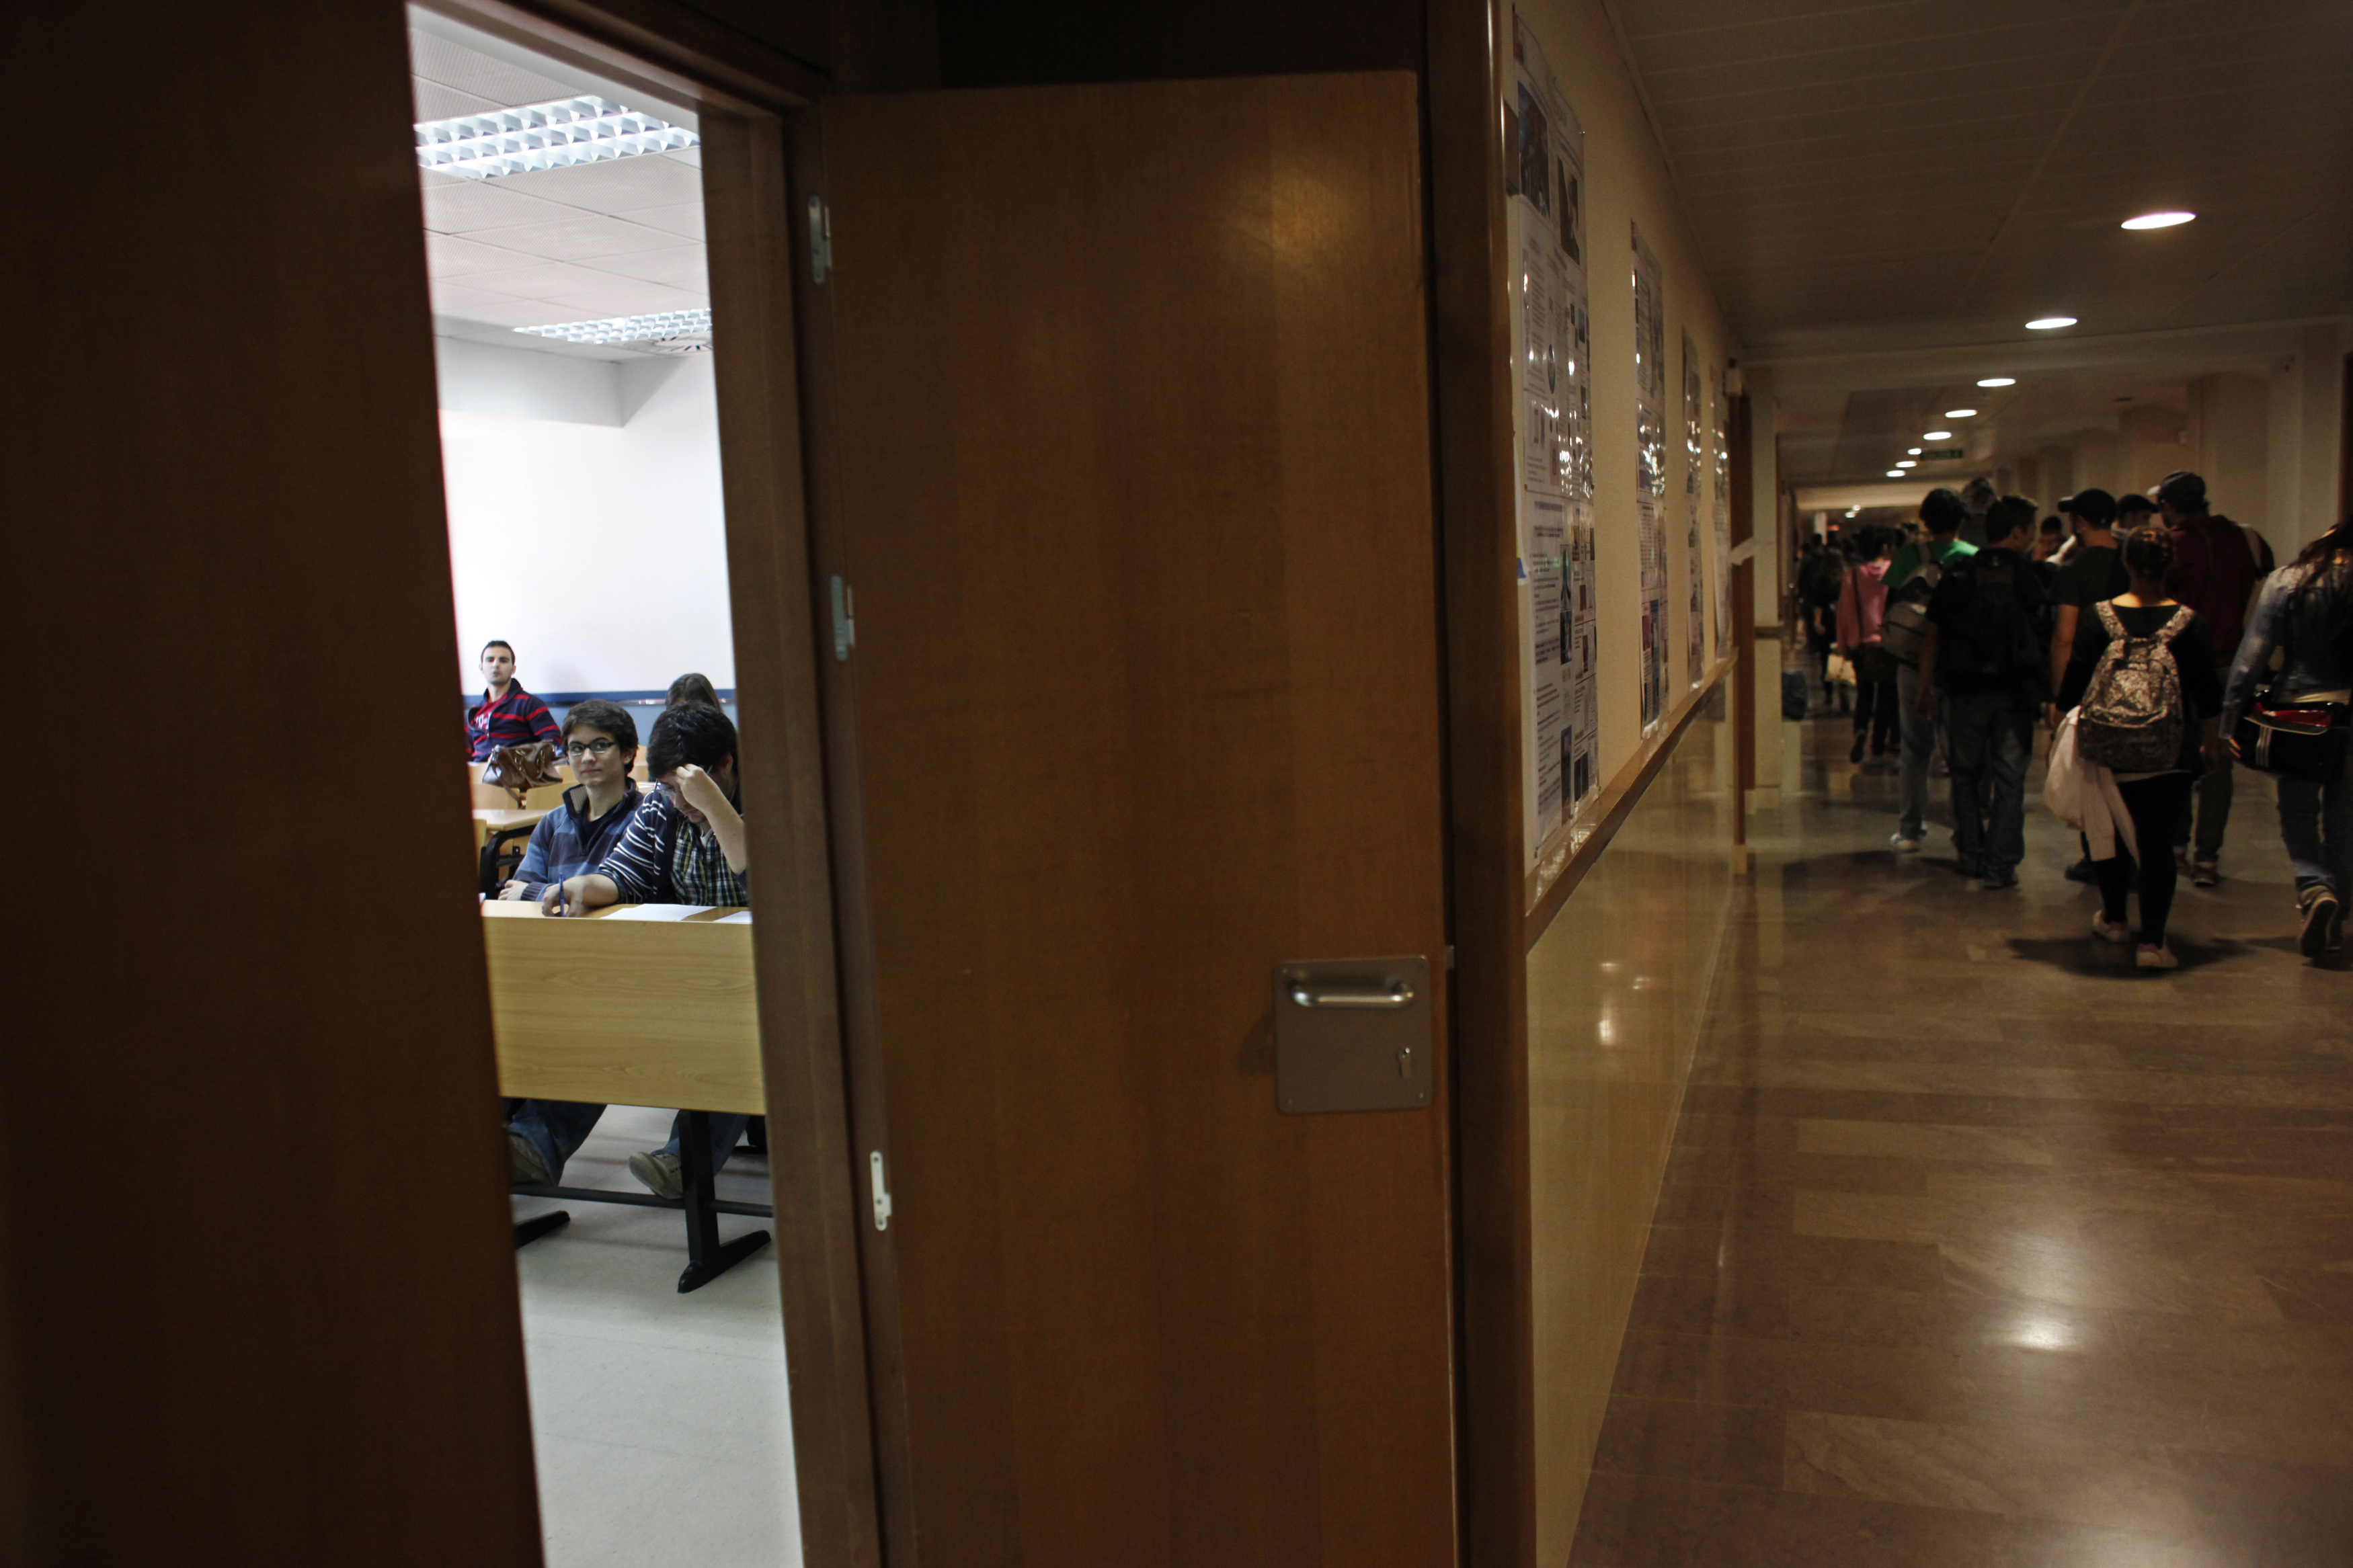 A handful of students attend class as other student picketers walk the hallways at Madrid's Complutense University during a general teachers' strike against educational cuts imposed by the Spanish government May 22, 2012. Spanish teachers went on strike on Tuesday to protest against cuts in education spending that labour unions say will put 100,000 substitute teachers out of work but that the government says are needed to tackle the euro zone debt crisis. REUTERS/Susana Vera (SPAIN - Tags: EDUCATION CIVIL UNREST) - GM1E85M1LOP01